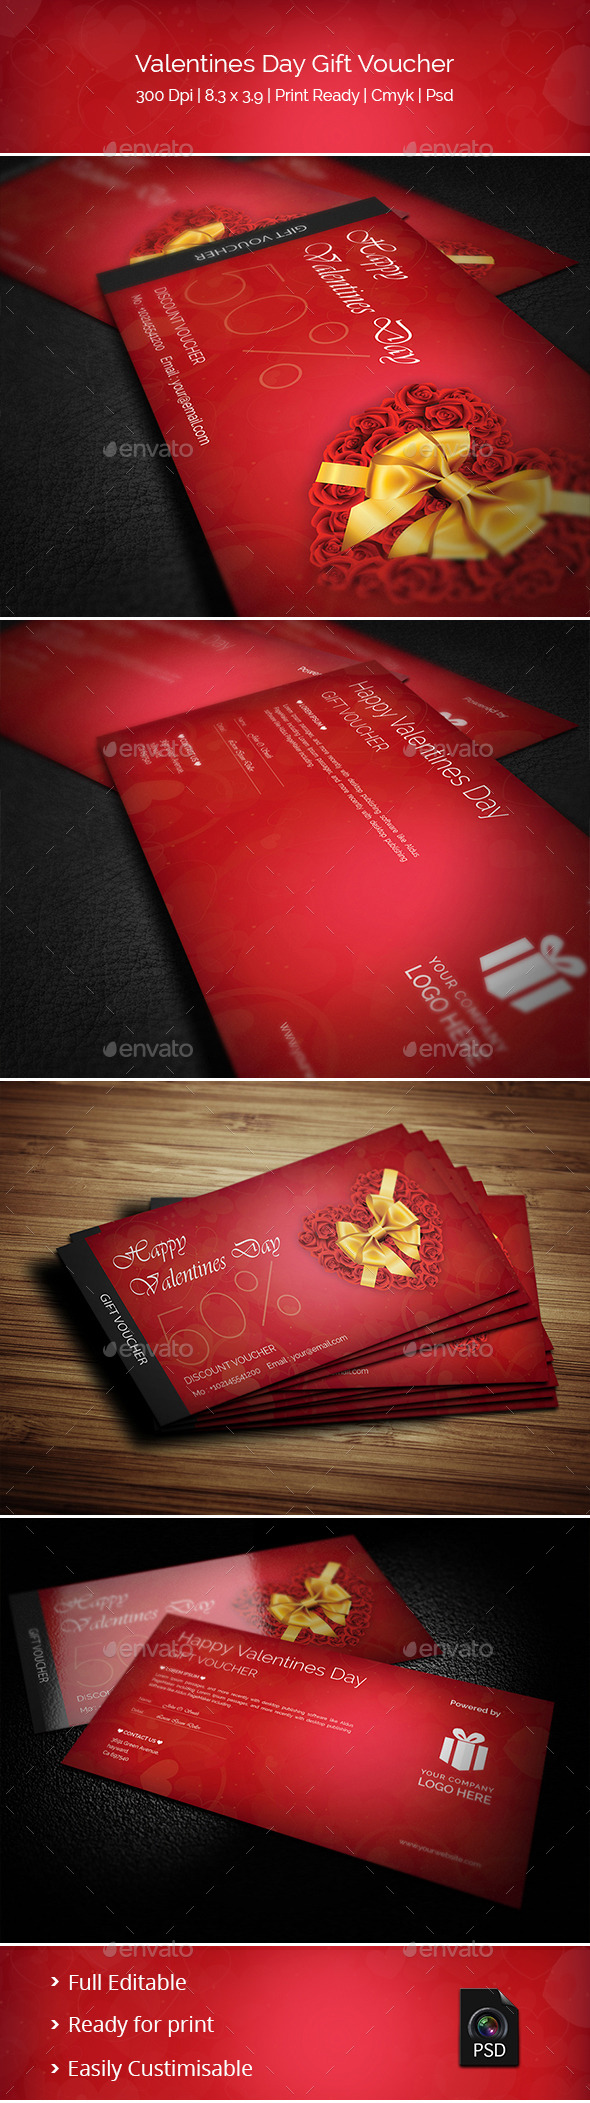 Creative Valentines Day Gift Voucher - Cards & Invites Print Templates